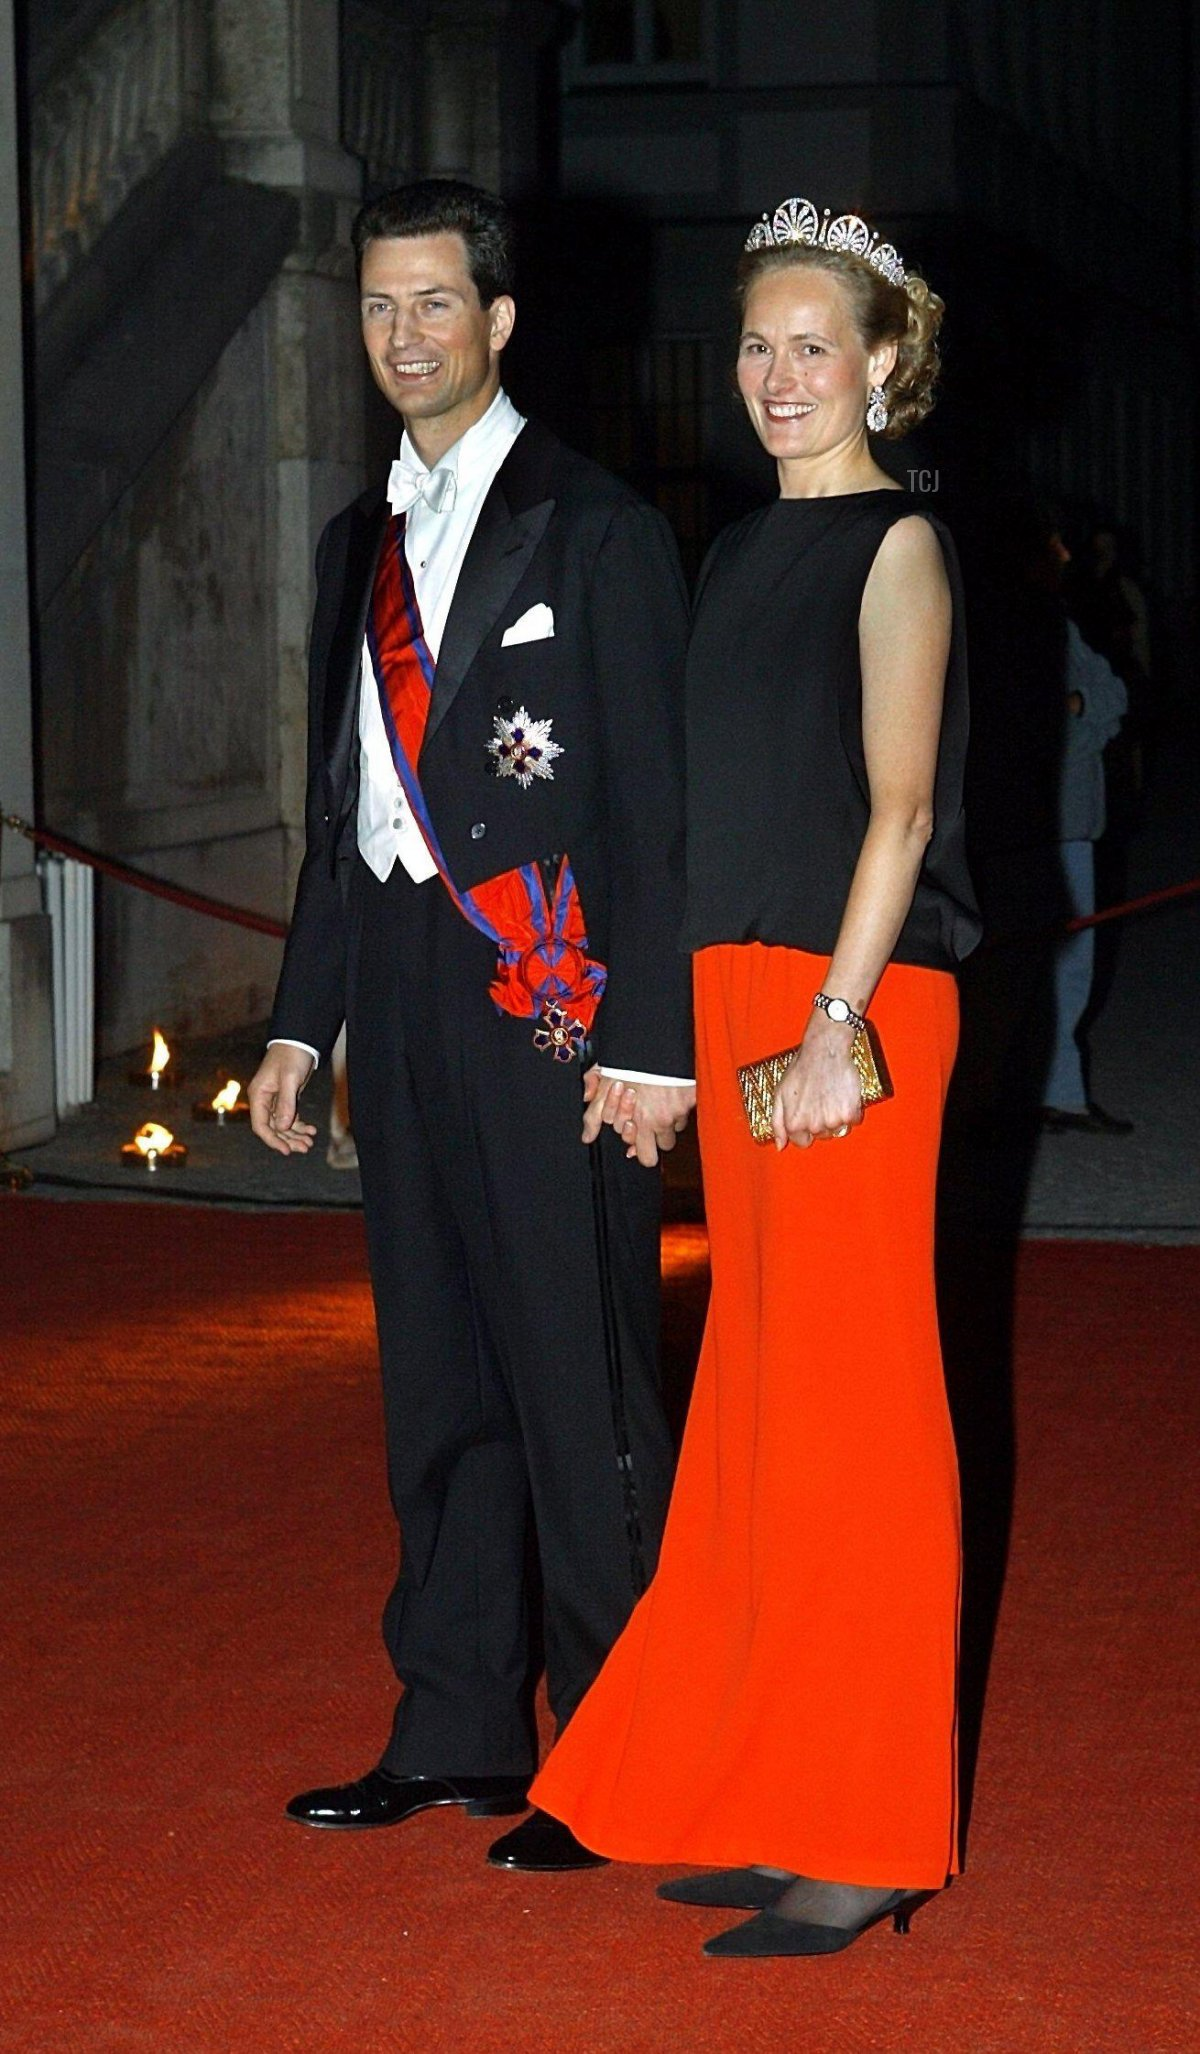 Alois Philipp Maria, Hereditary Prince of Liechtenstein, and his wife Sophie, Hereditary Princess of Liechtenstein, arrive to a reception on the occasion Duchess Elizabeth's wedding in Munich, Germany, 22 September 2004